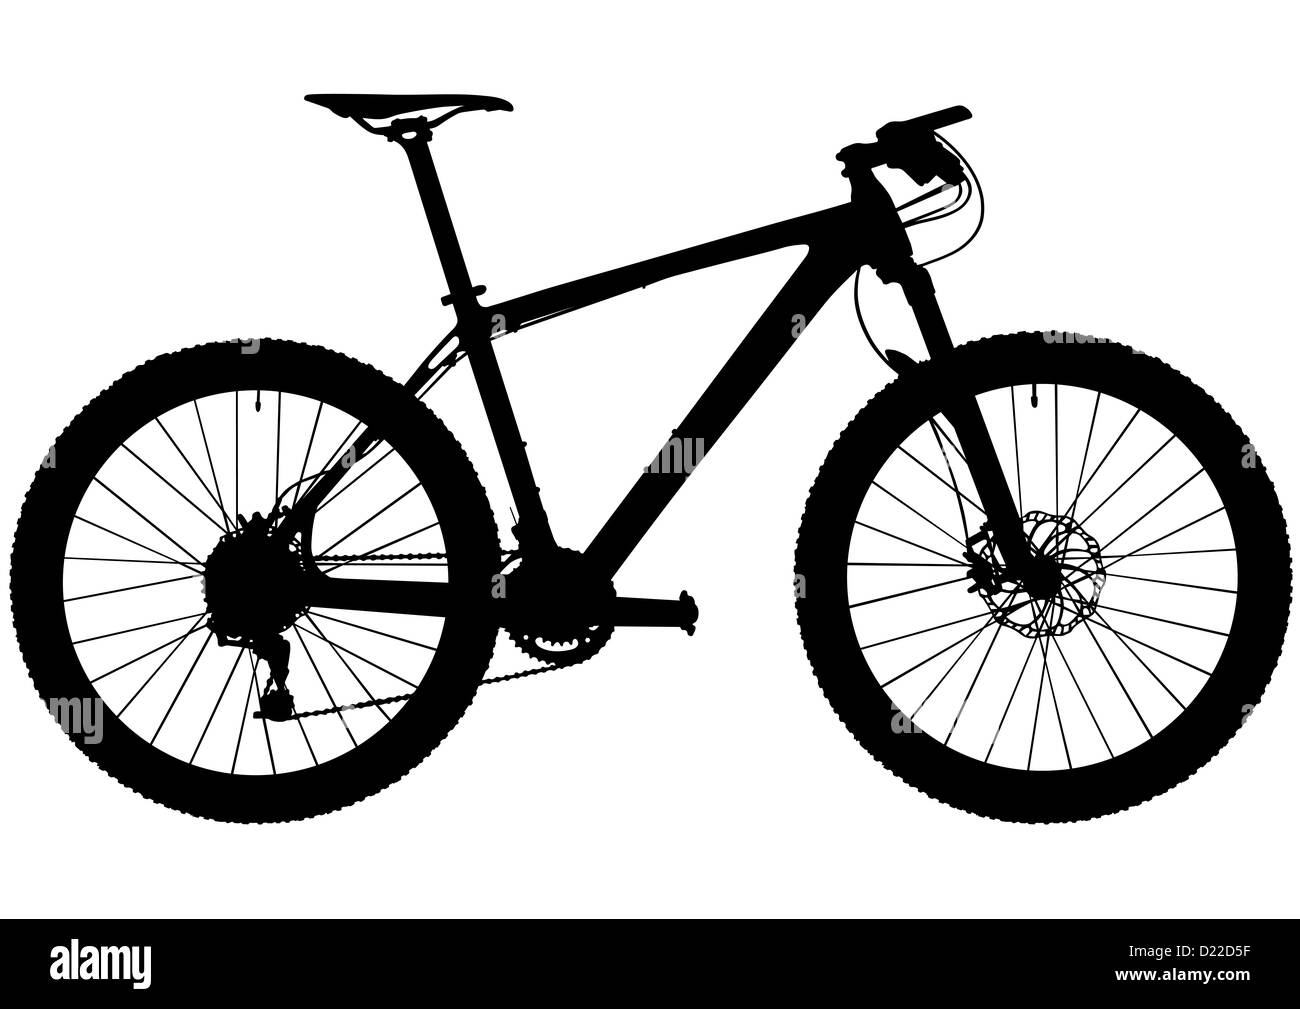 Hard tail cross country mountain bike silhouette on white background - Stock Image